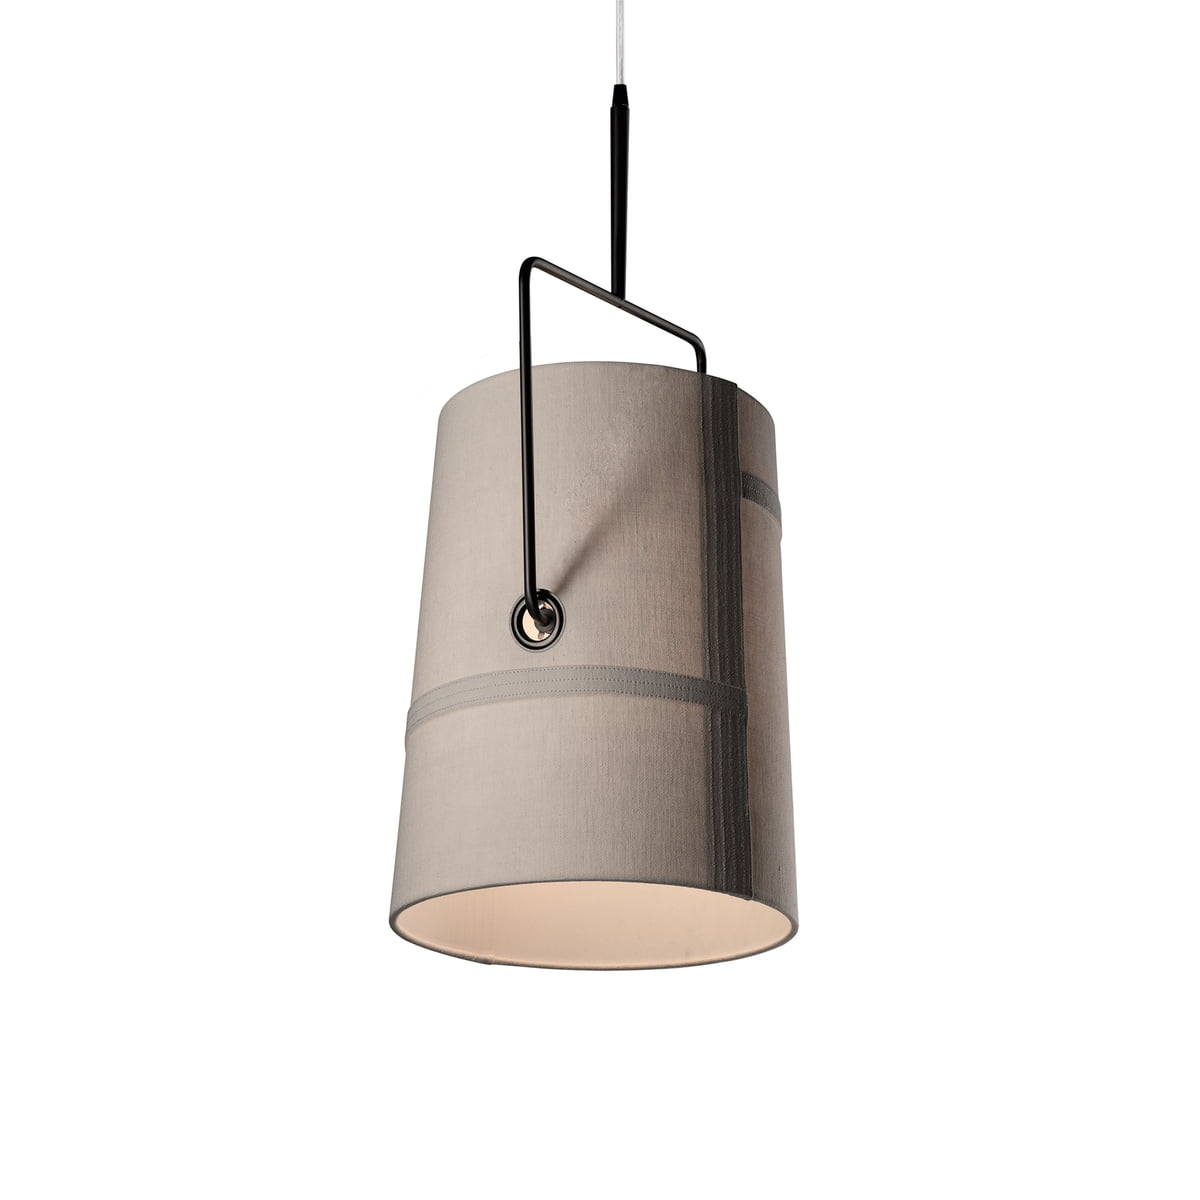 Fork pendant light by diesel living in the shop diesel living fork piccola pendant light brown grey aloadofball Choice Image